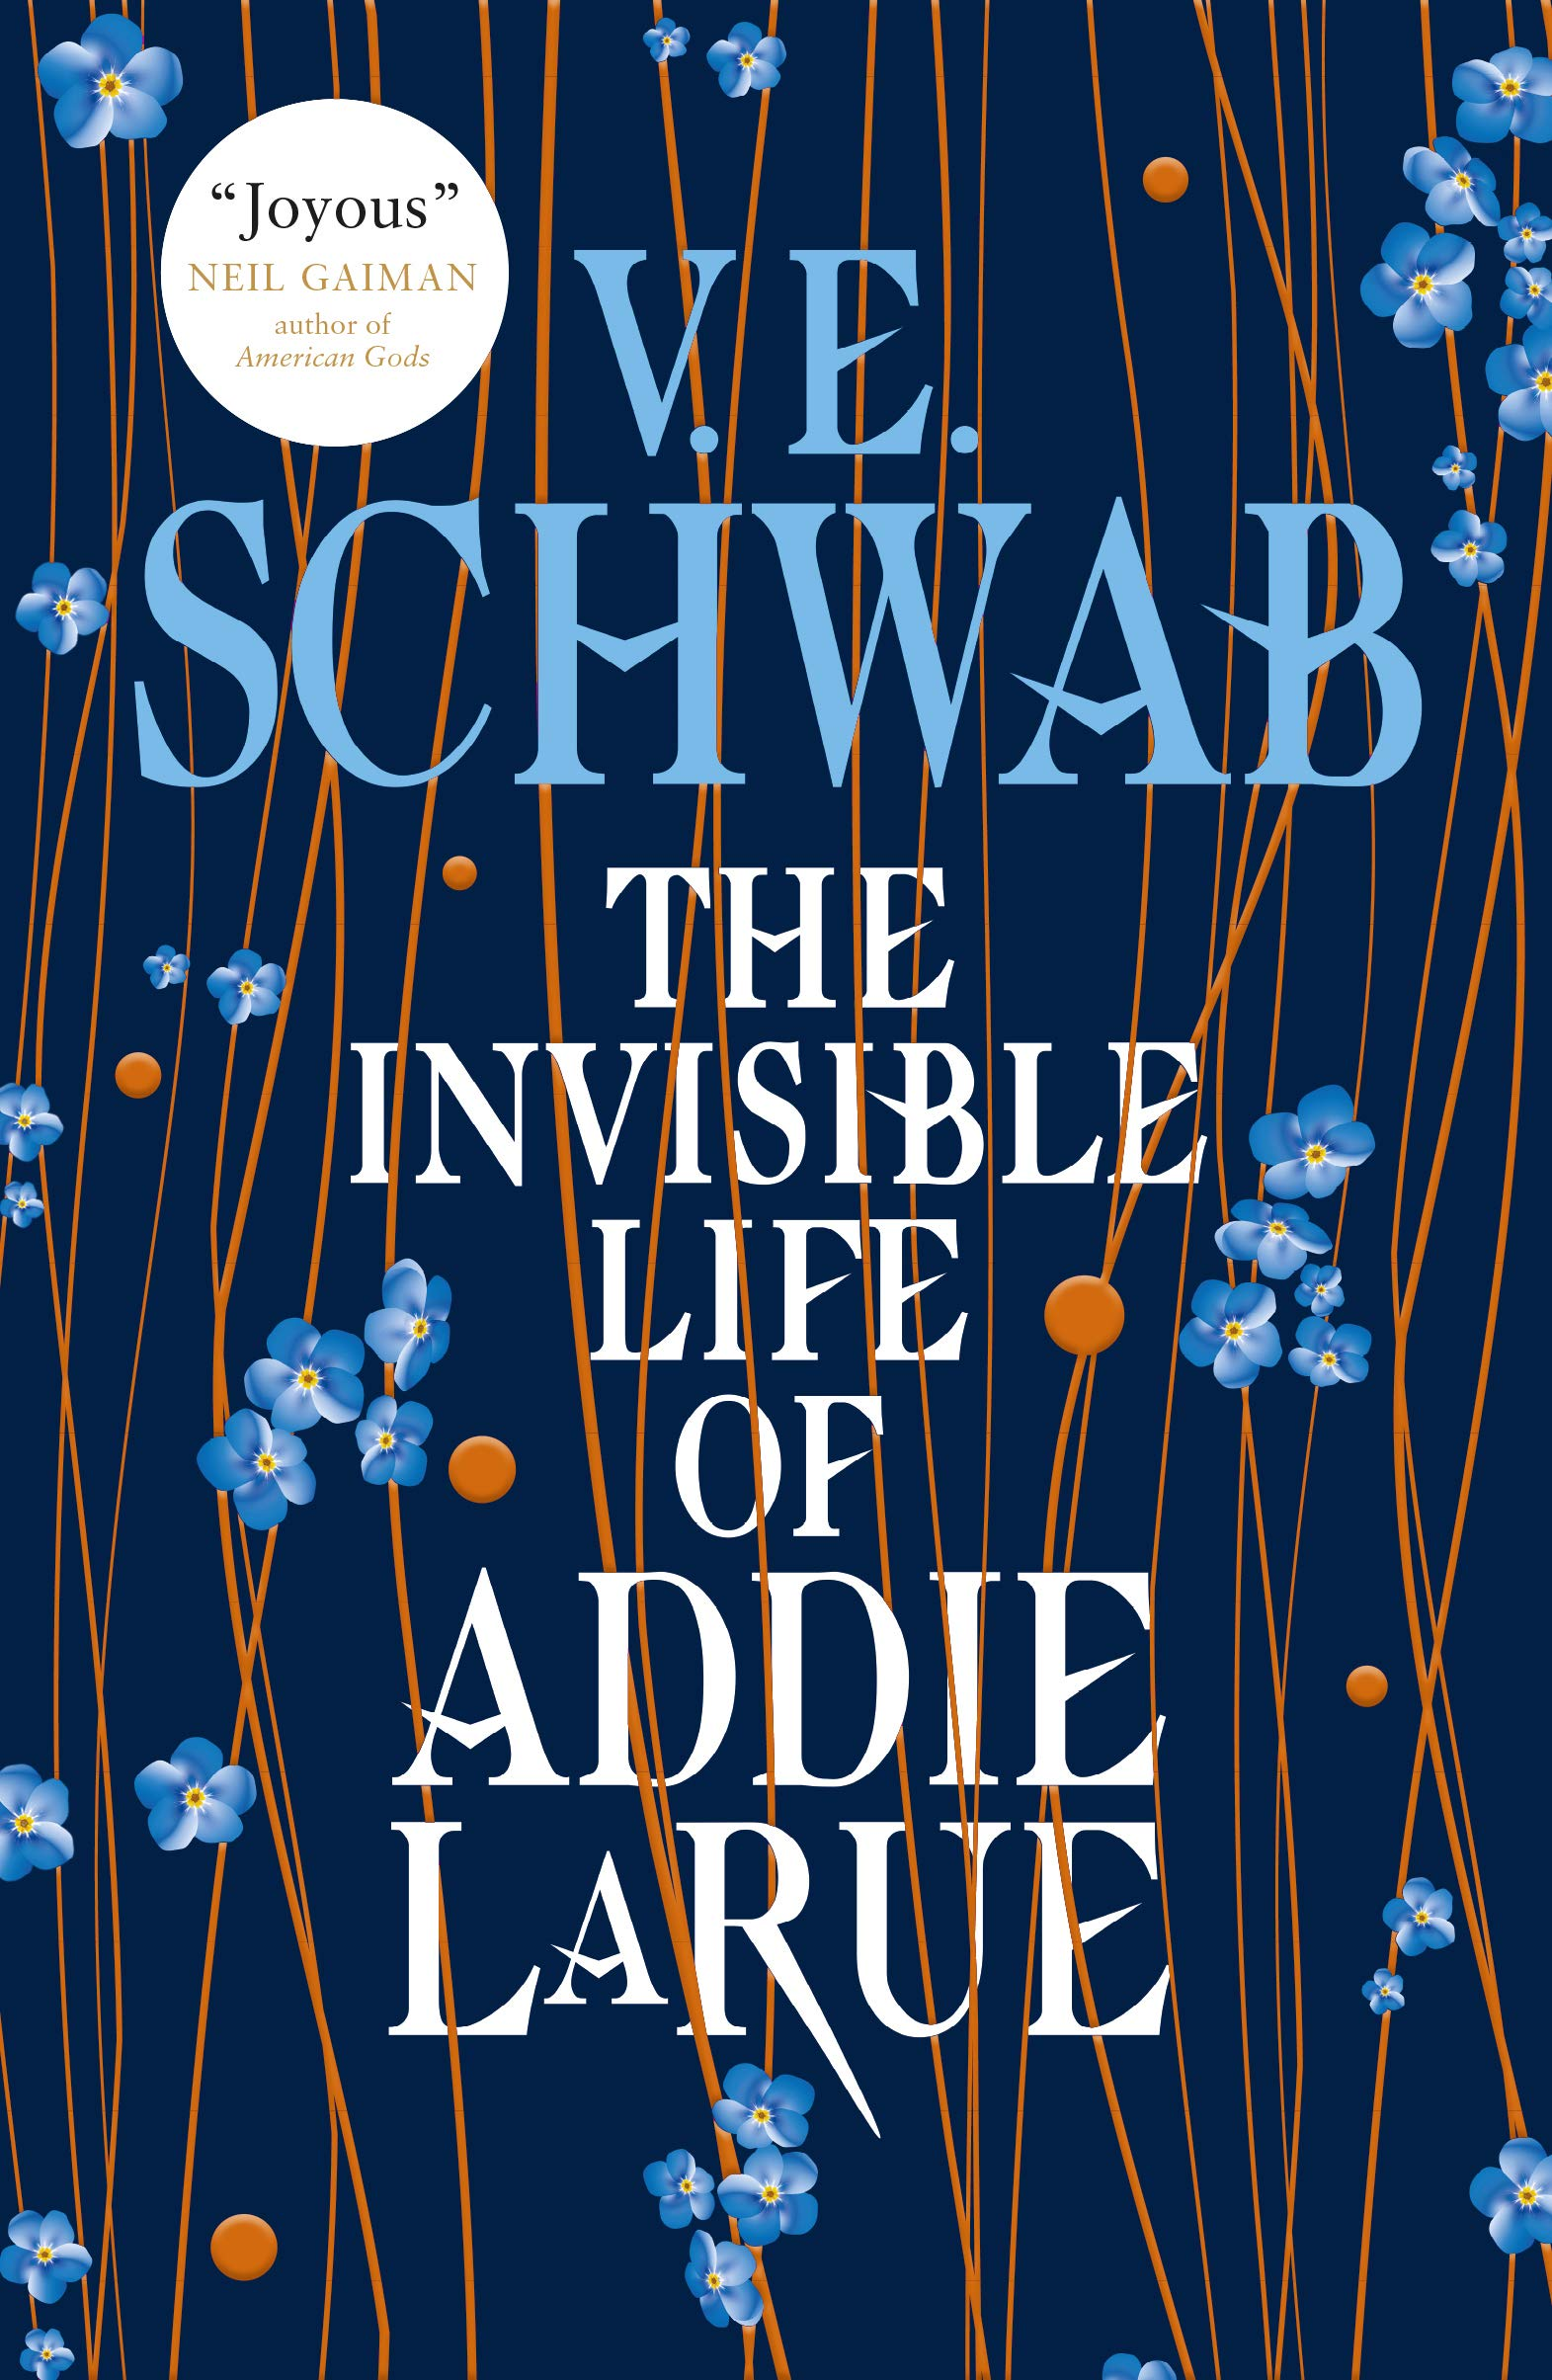 Buy The Invisible Life of Addie LaRue Book Online at Low Prices in India | The  Invisible Life of Addie LaRue Reviews & Ratings - Amazon.in